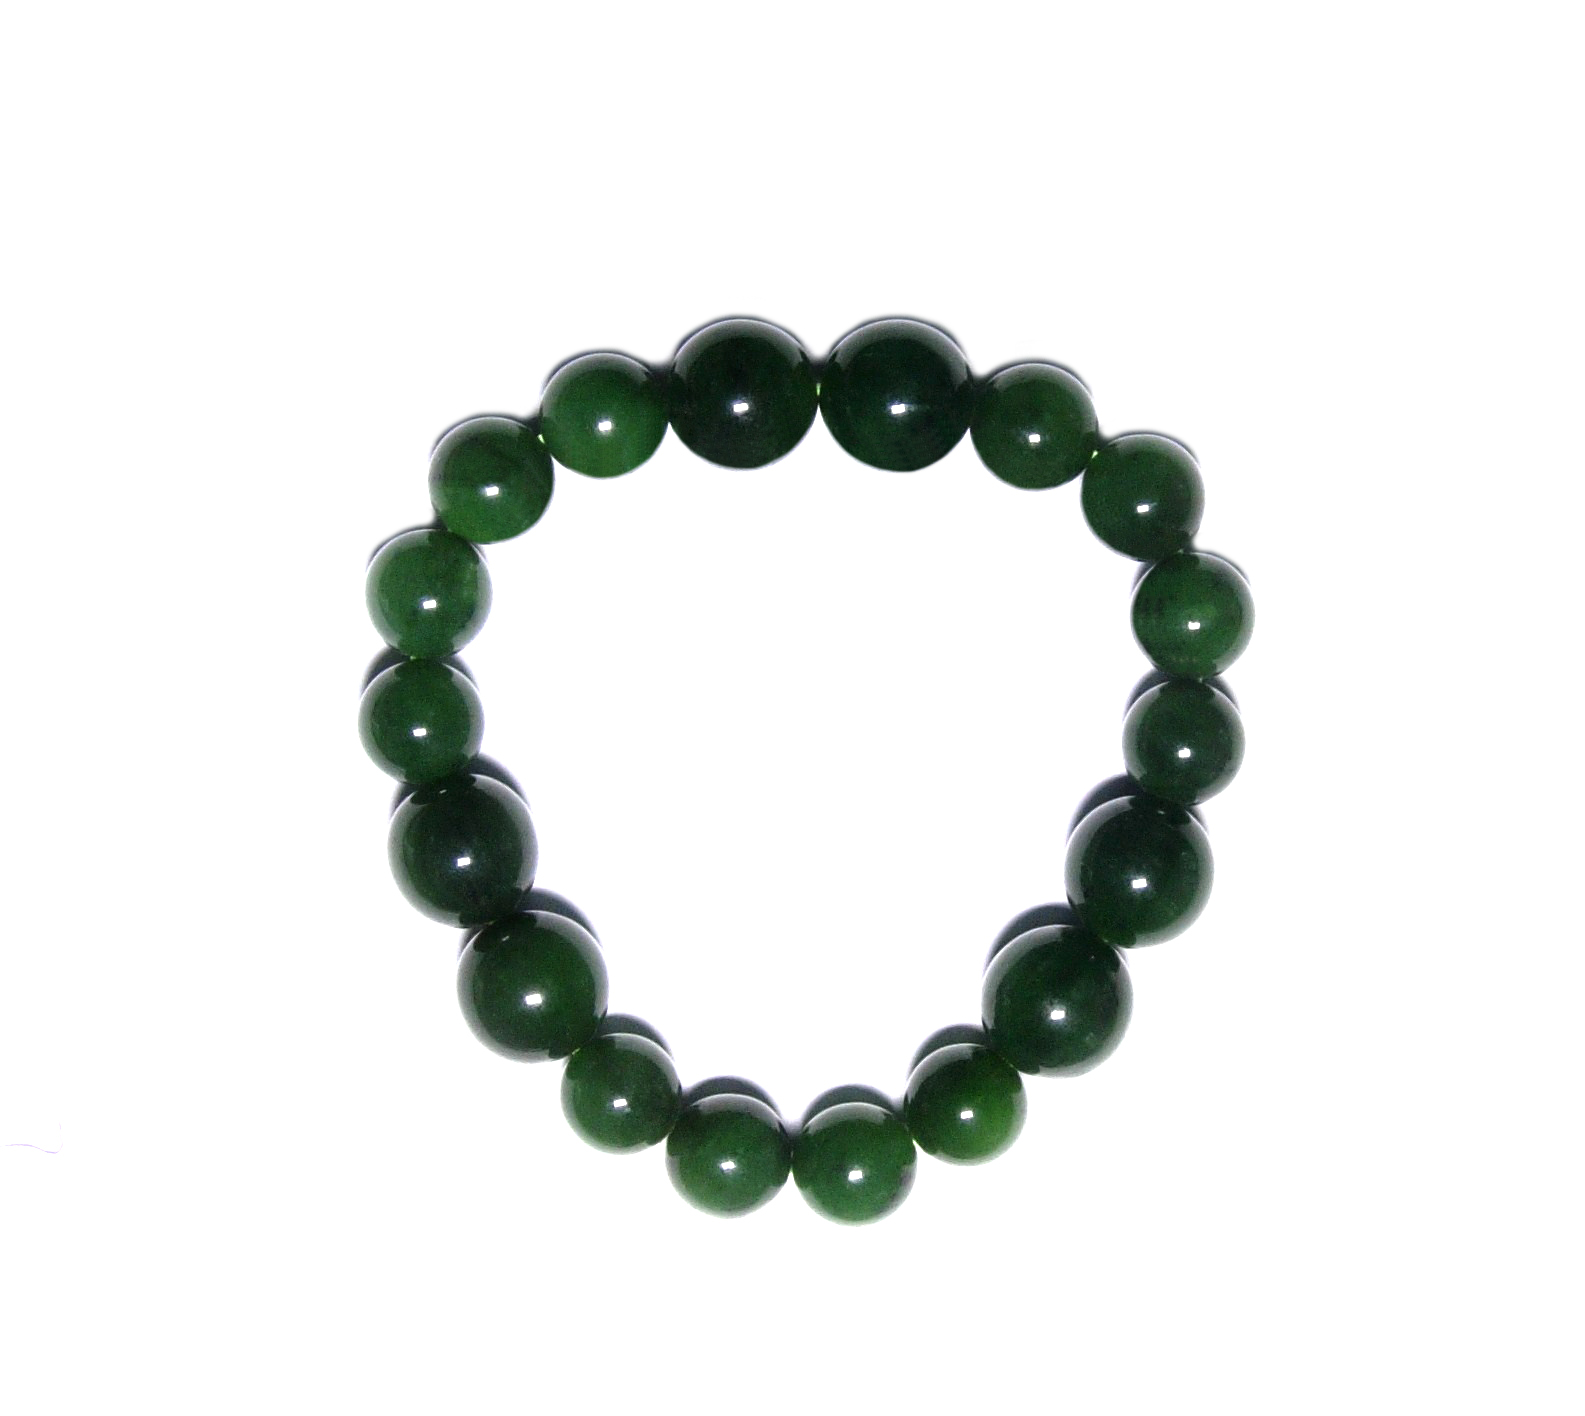 stone bracelet multilayer tibet longevity pendant natural description silver necklace jewelry lock emerald female chain product green